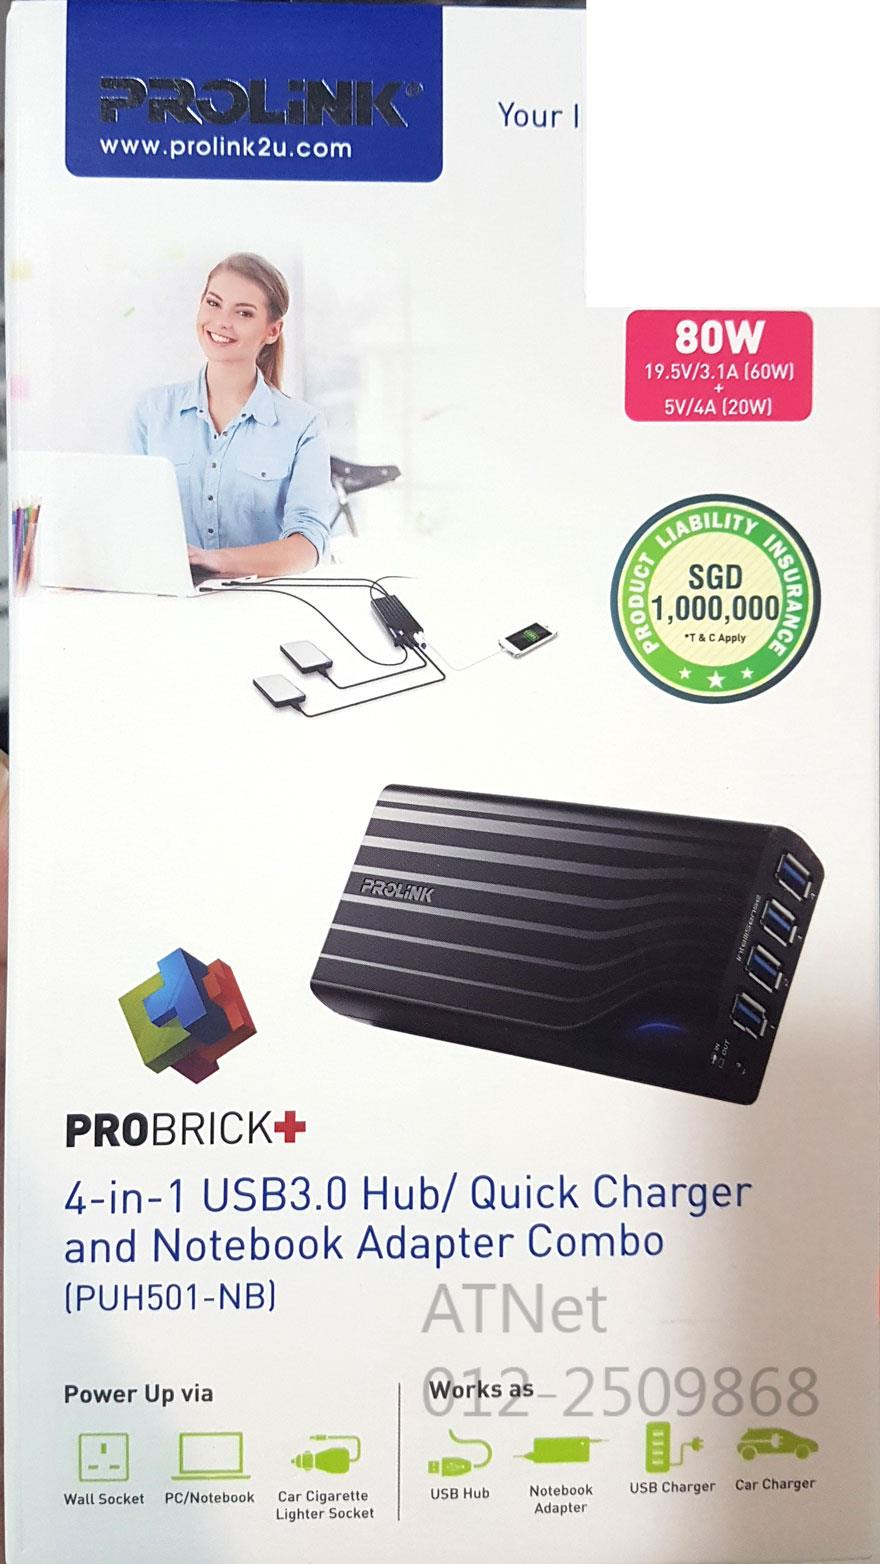 PROLINK PROBRICK+ 4-in-1 USB3.0 Hub/ Quick Charger (PUH501-NB)